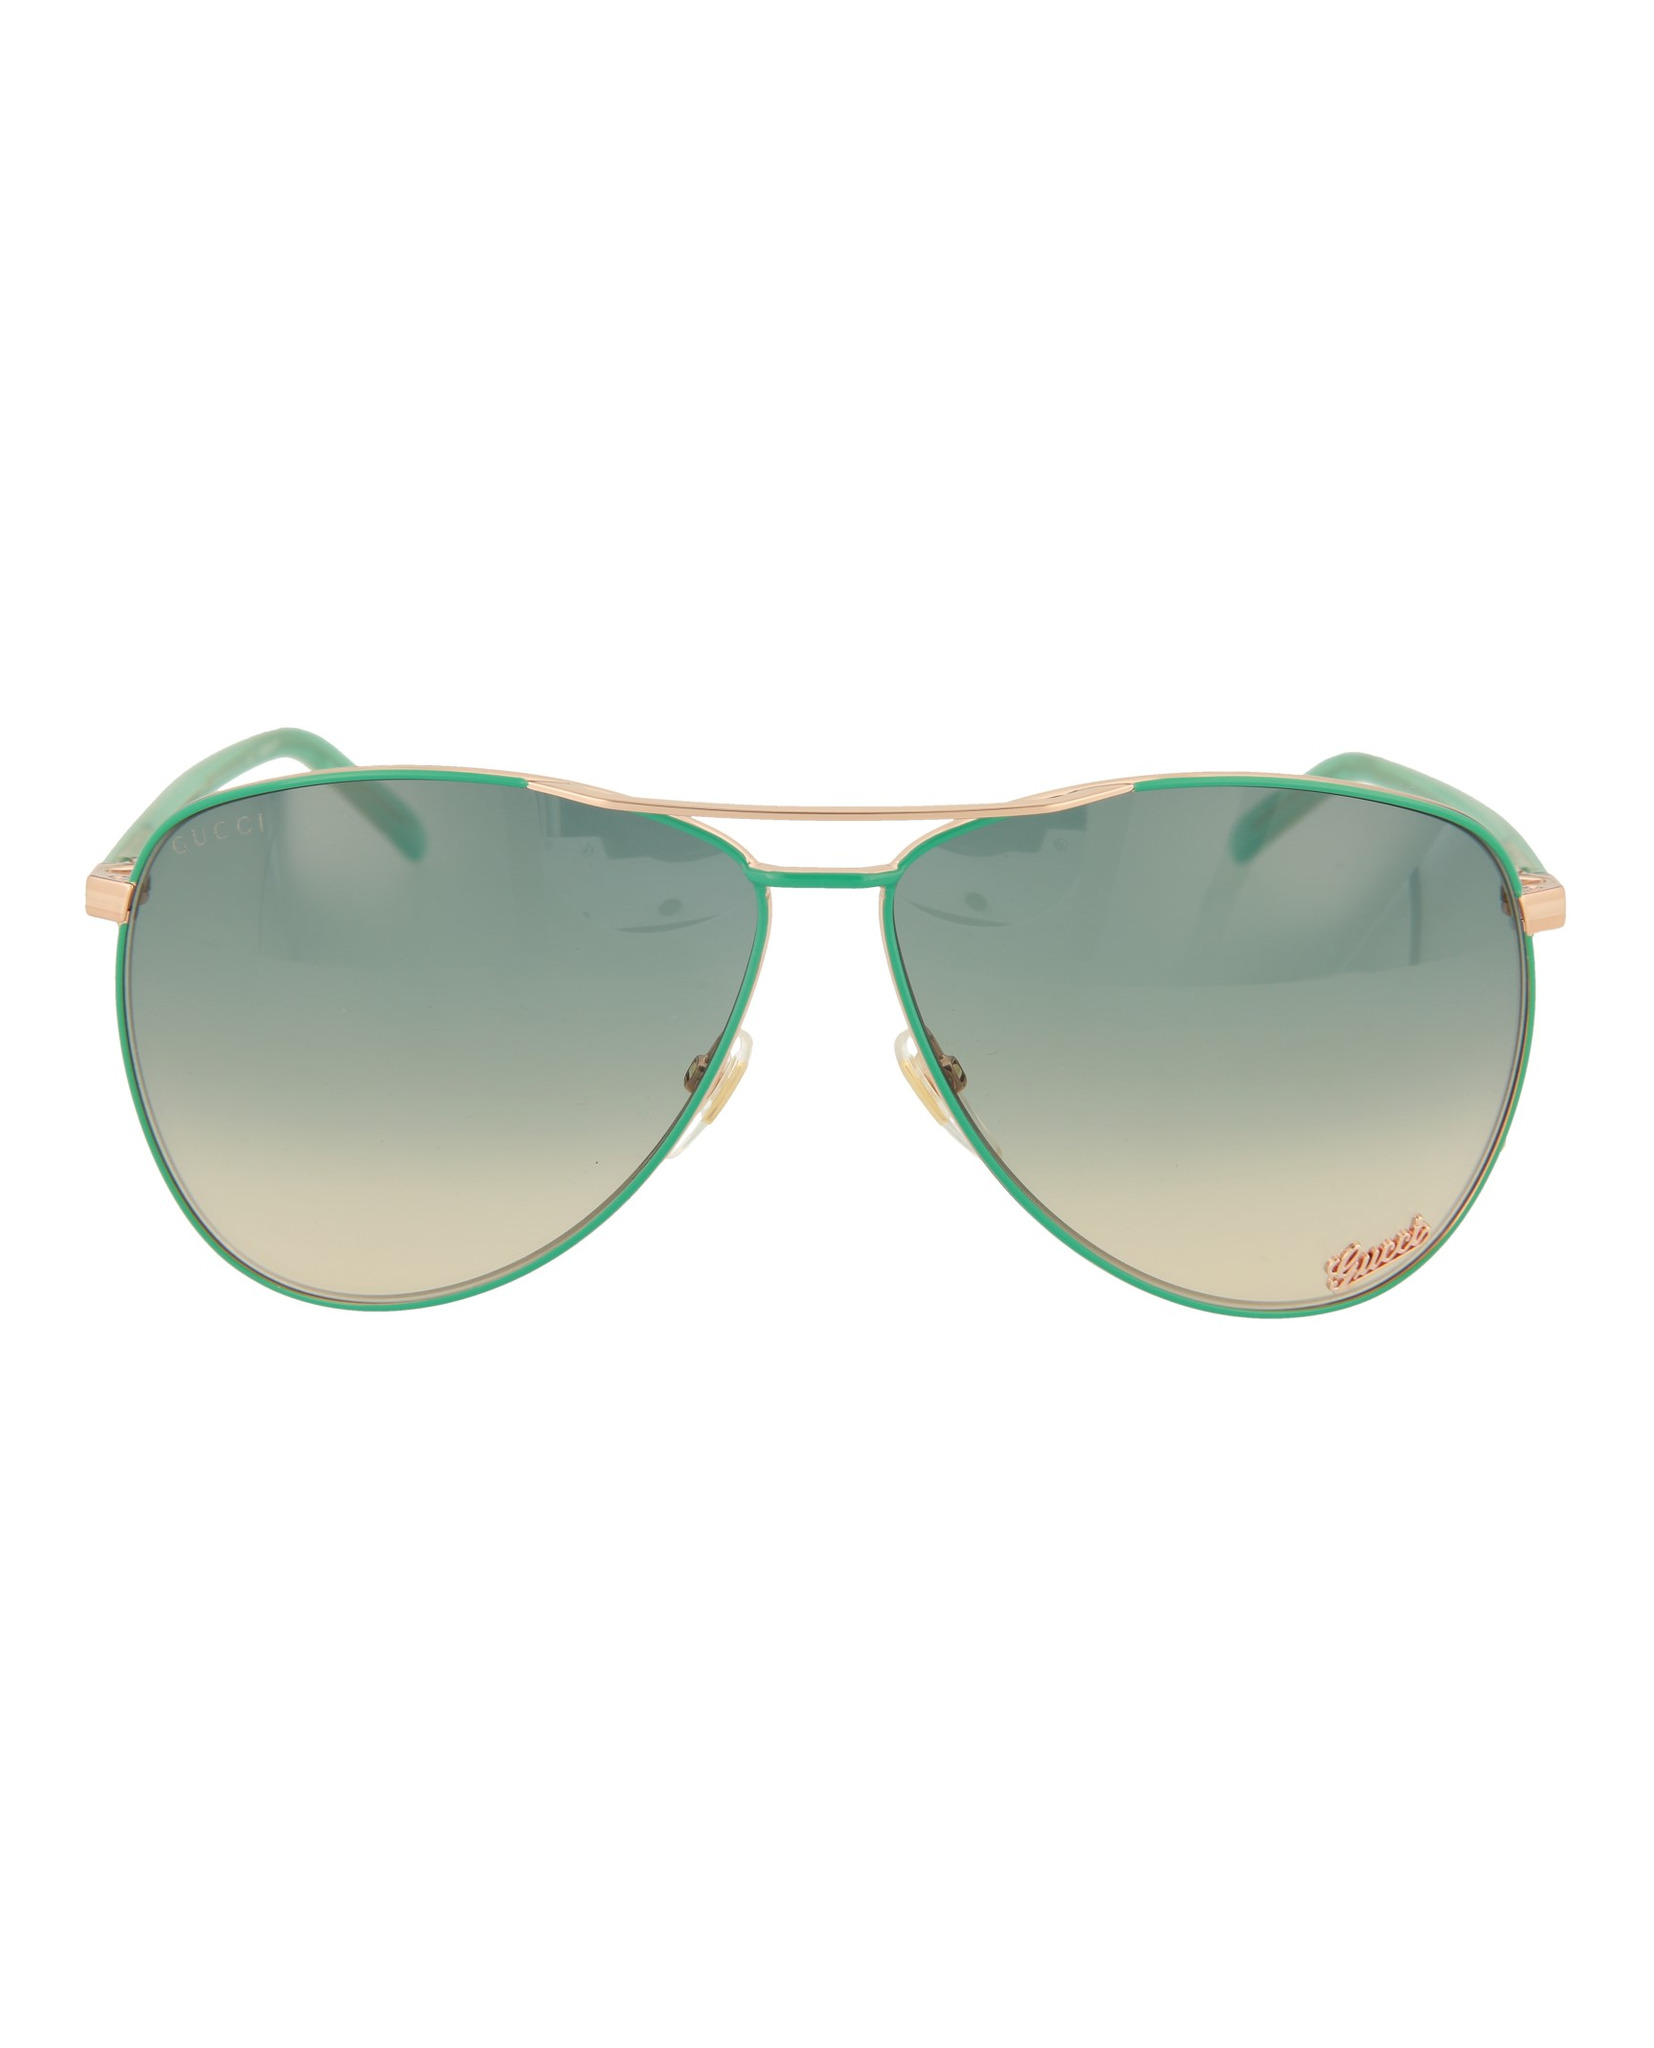 59e5616362 Gucci Womens Aviator Sunglasses GG0502S-30006512-003 191966105783